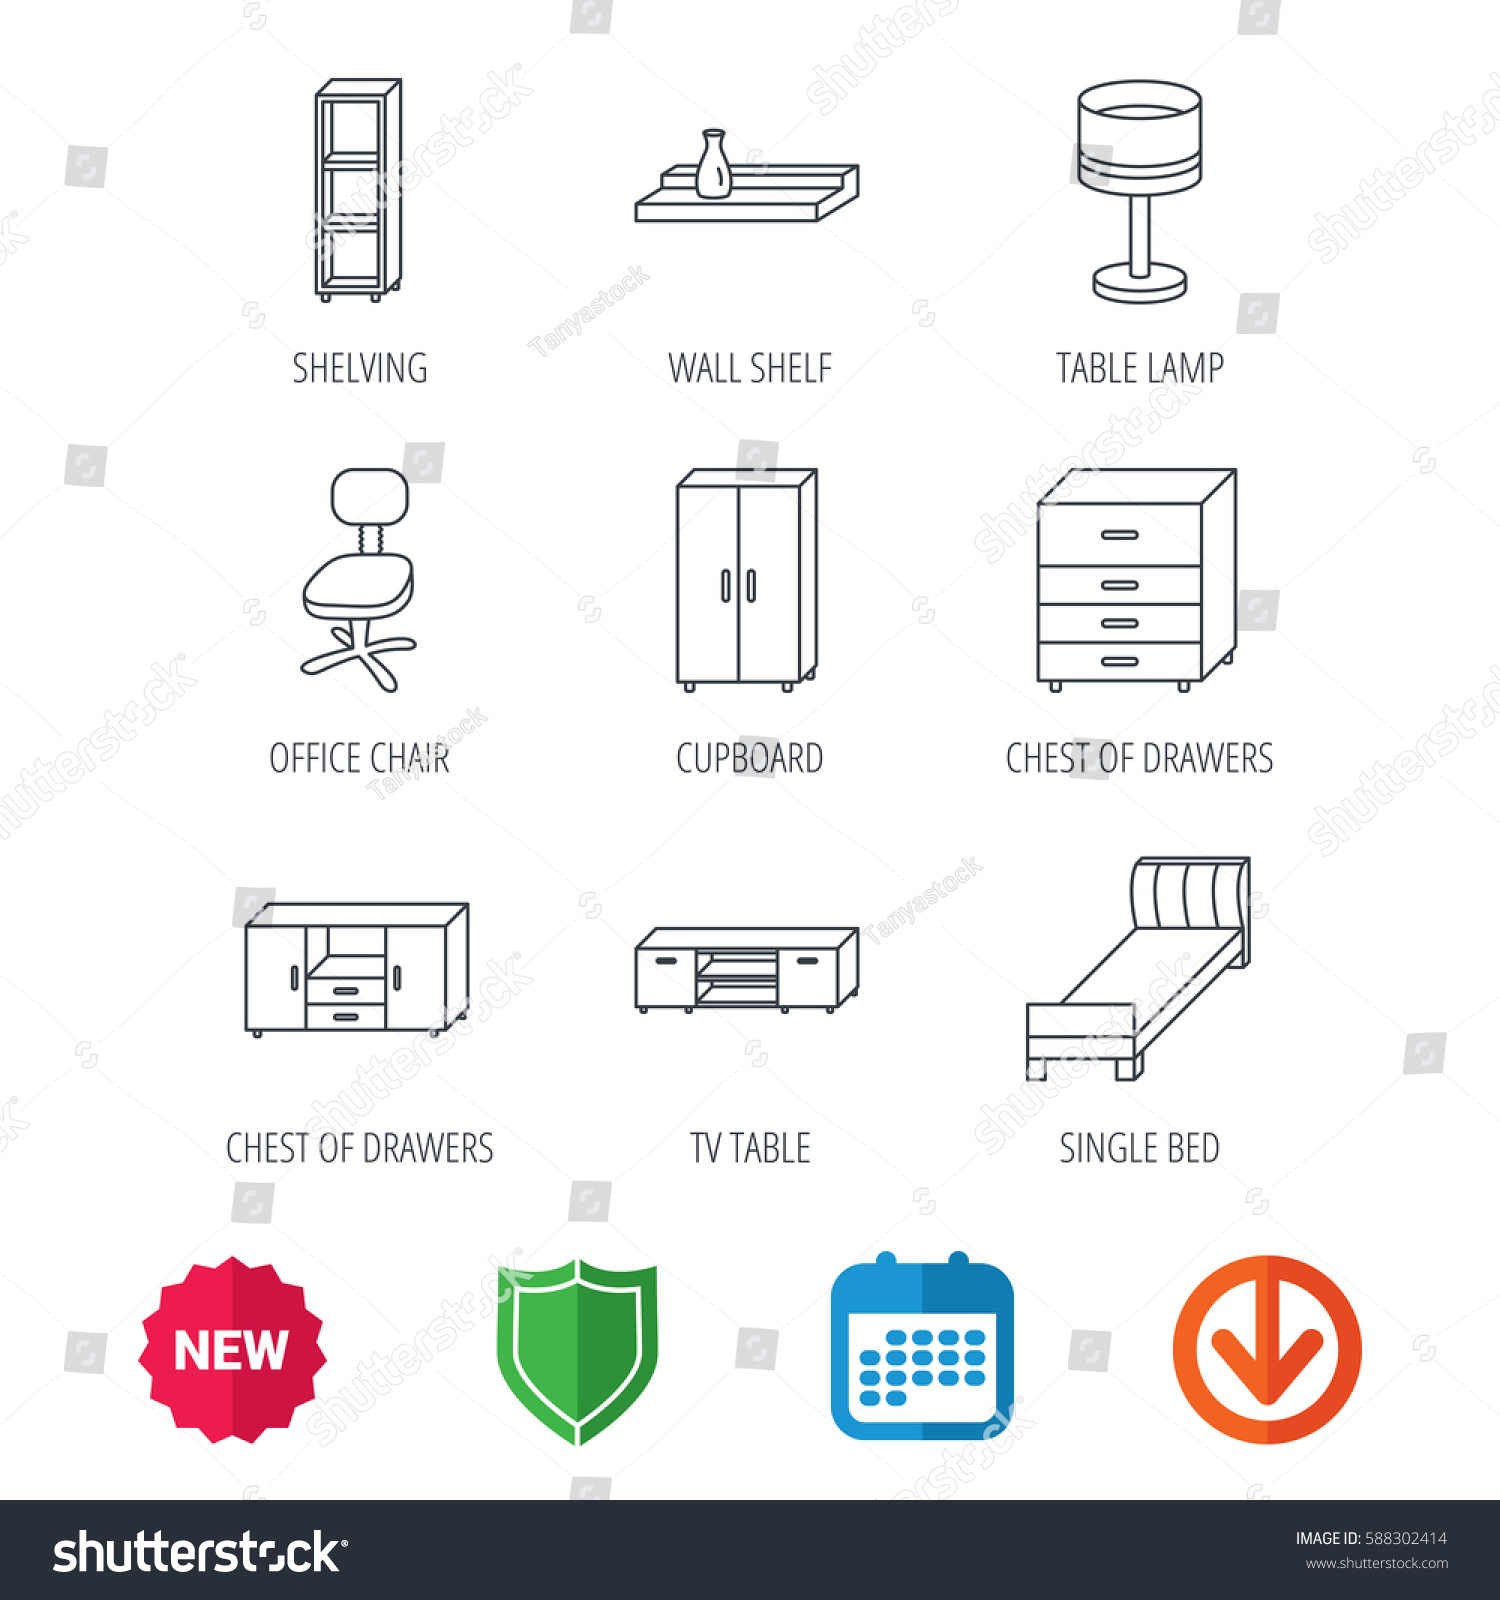 Single bed tv table shelving icons stock vector 588302414 single bed tv table and shelving icons office chair table lamp and cupboard geotapseo Gallery